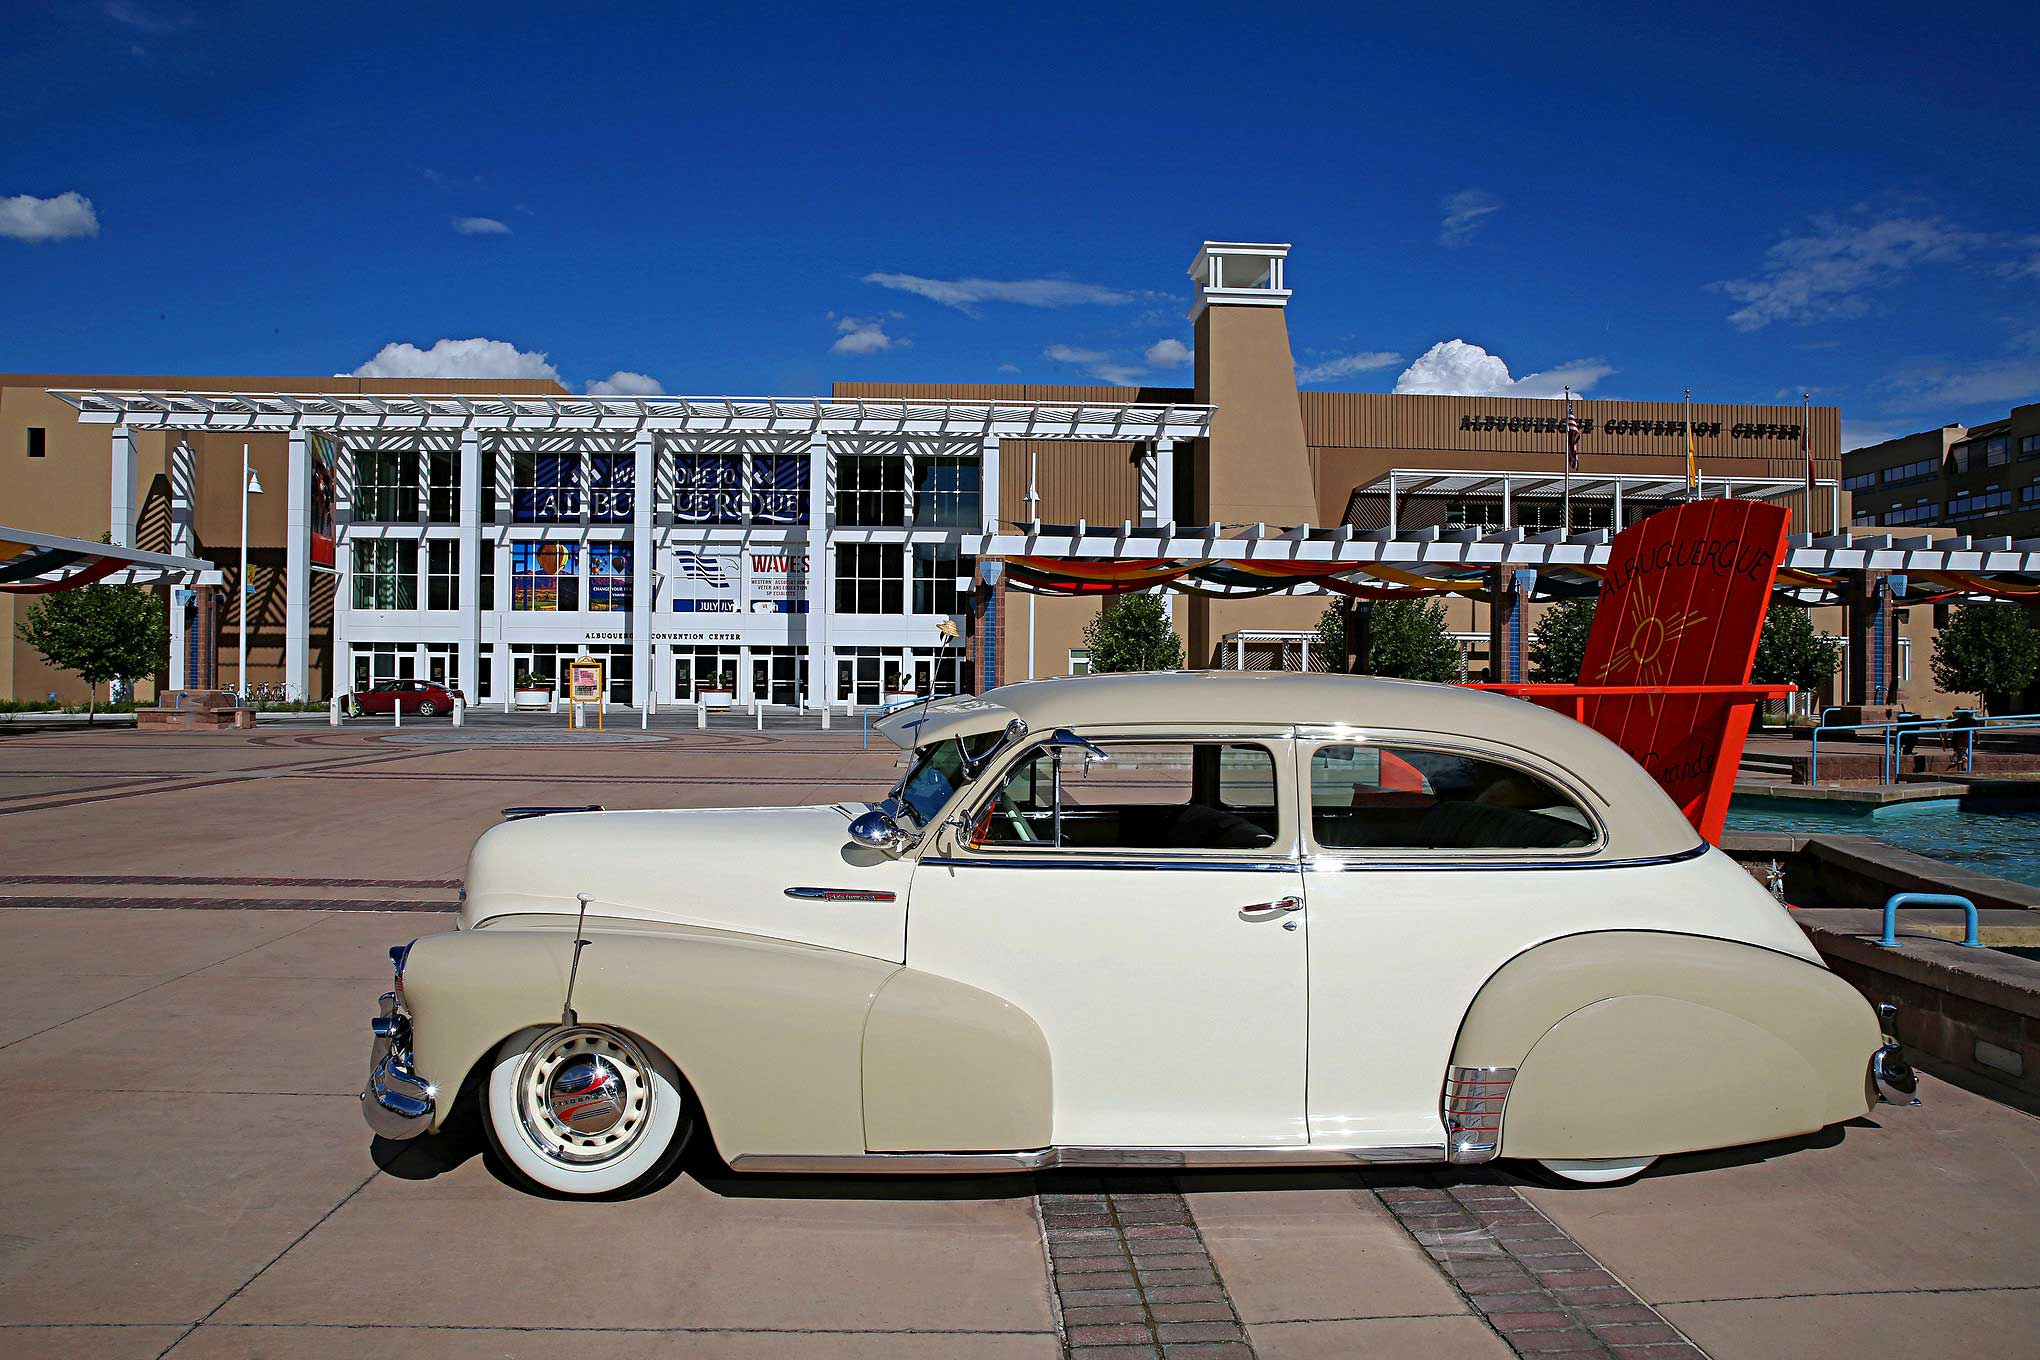 1948 Chevrolet Fleetmaster - A Special Delivery